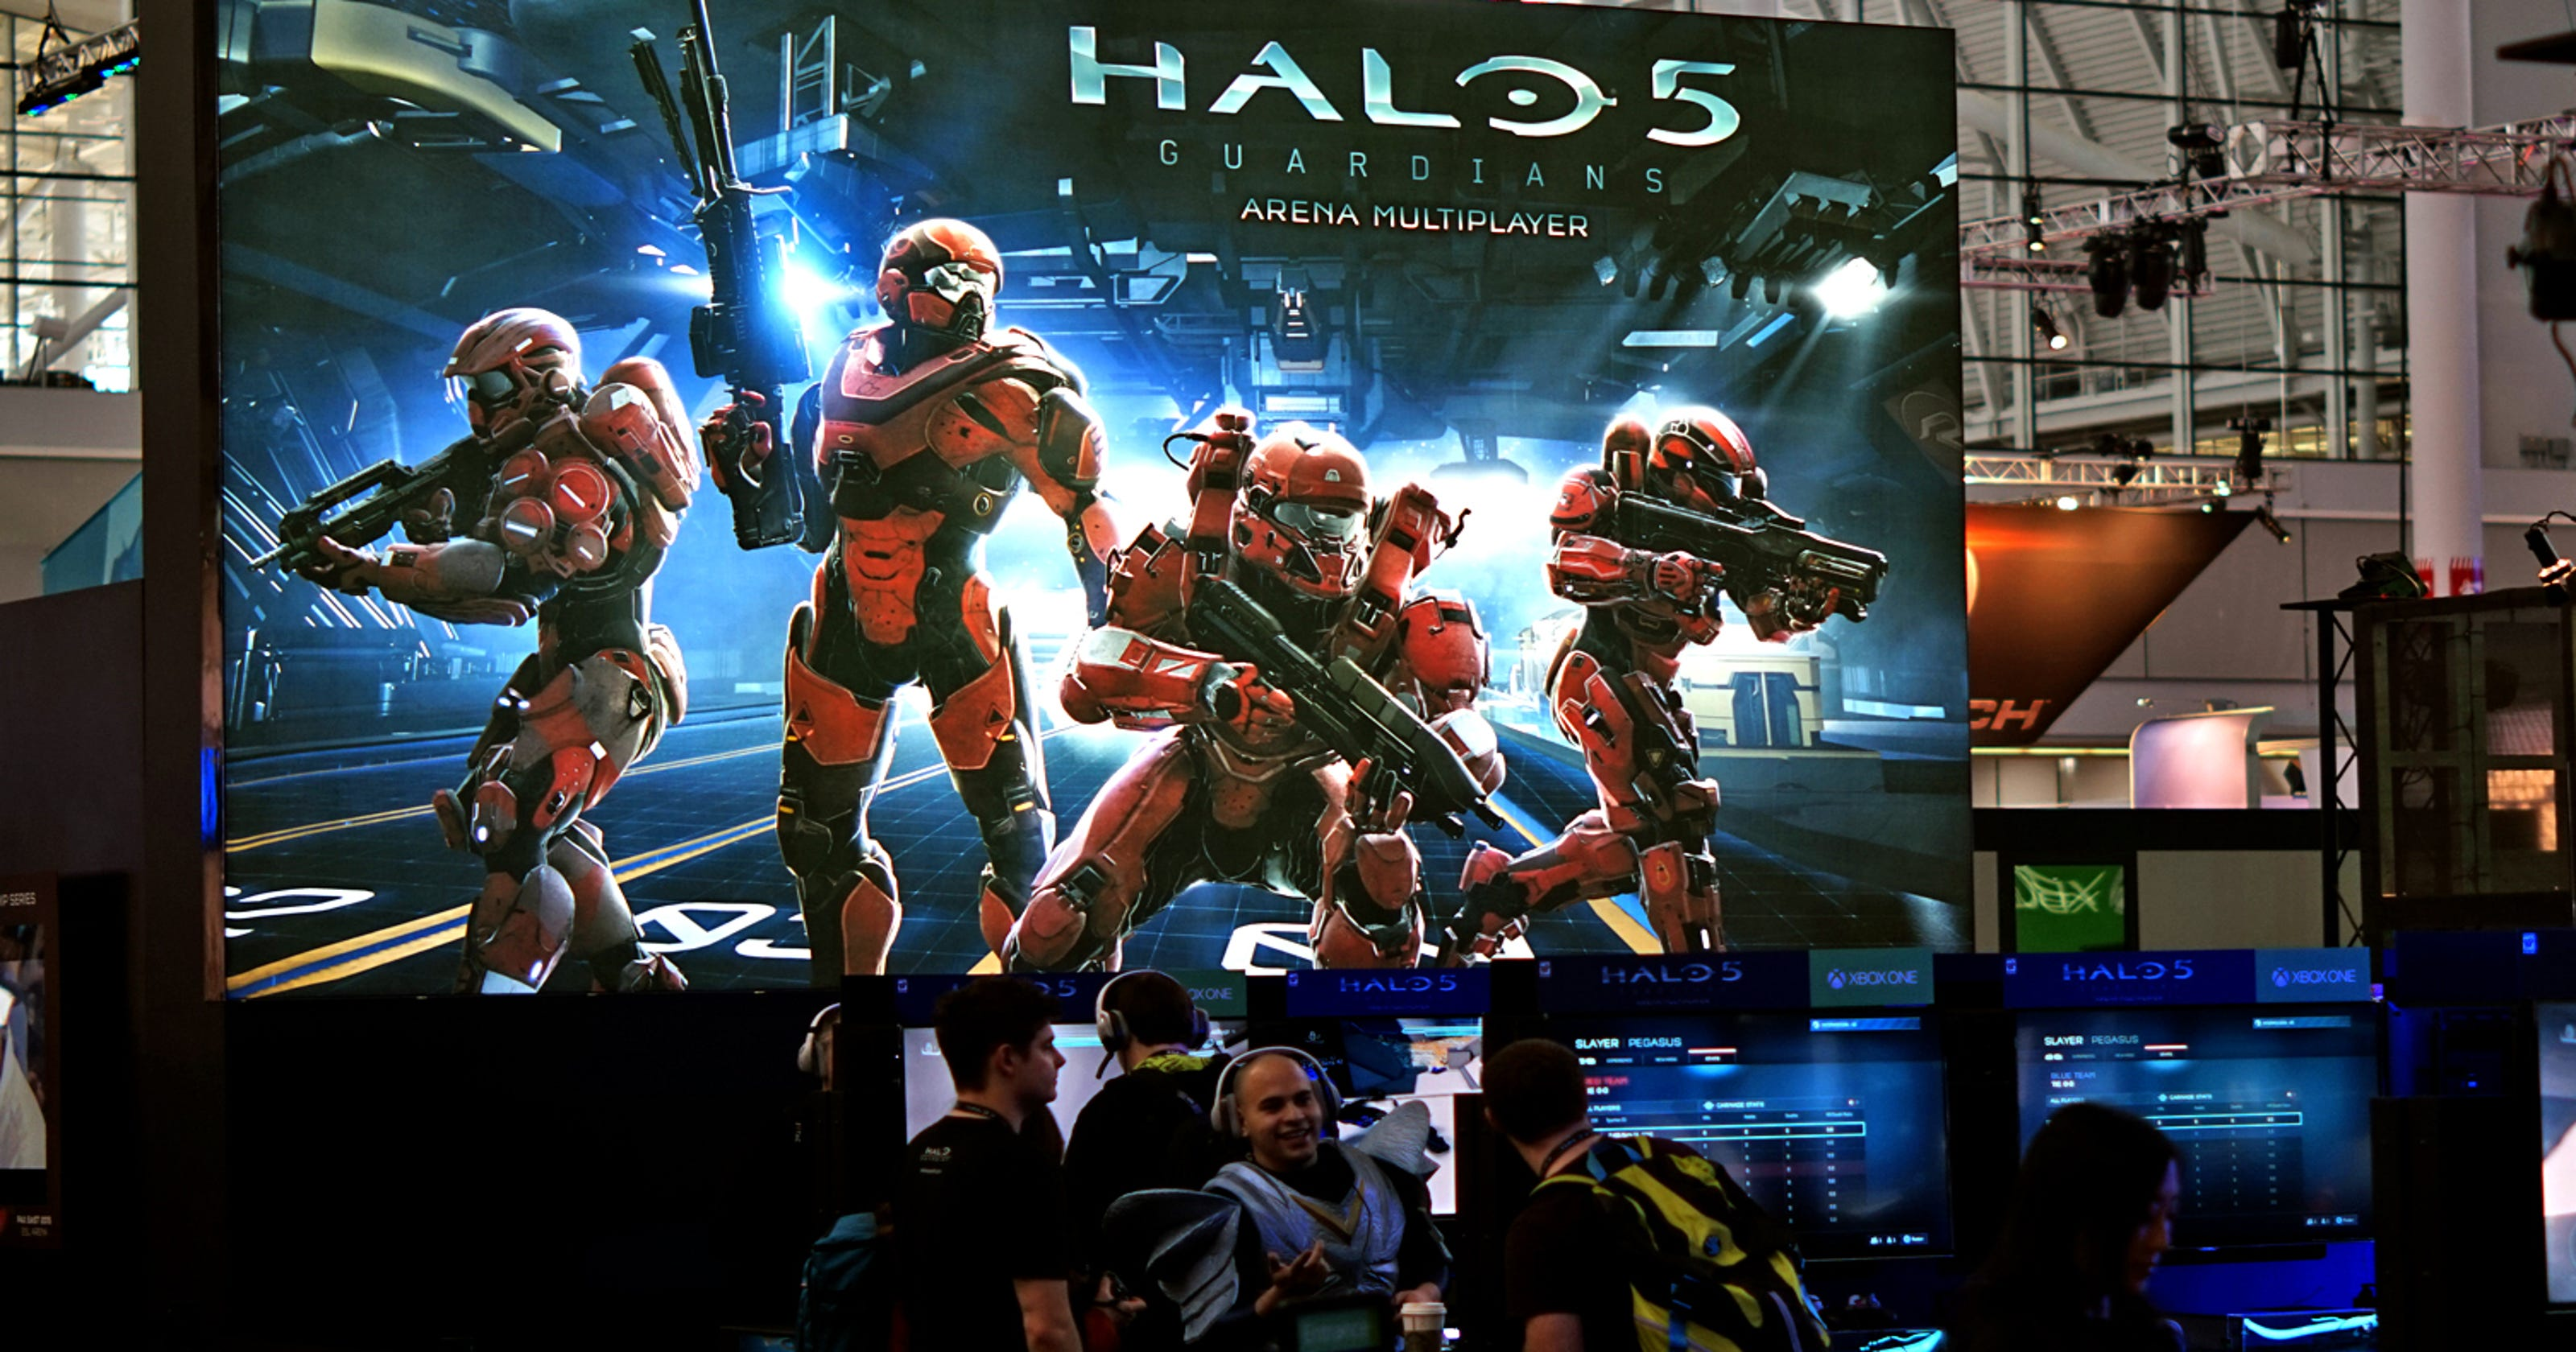 An early look at Halo 5: Guardians multiplayer